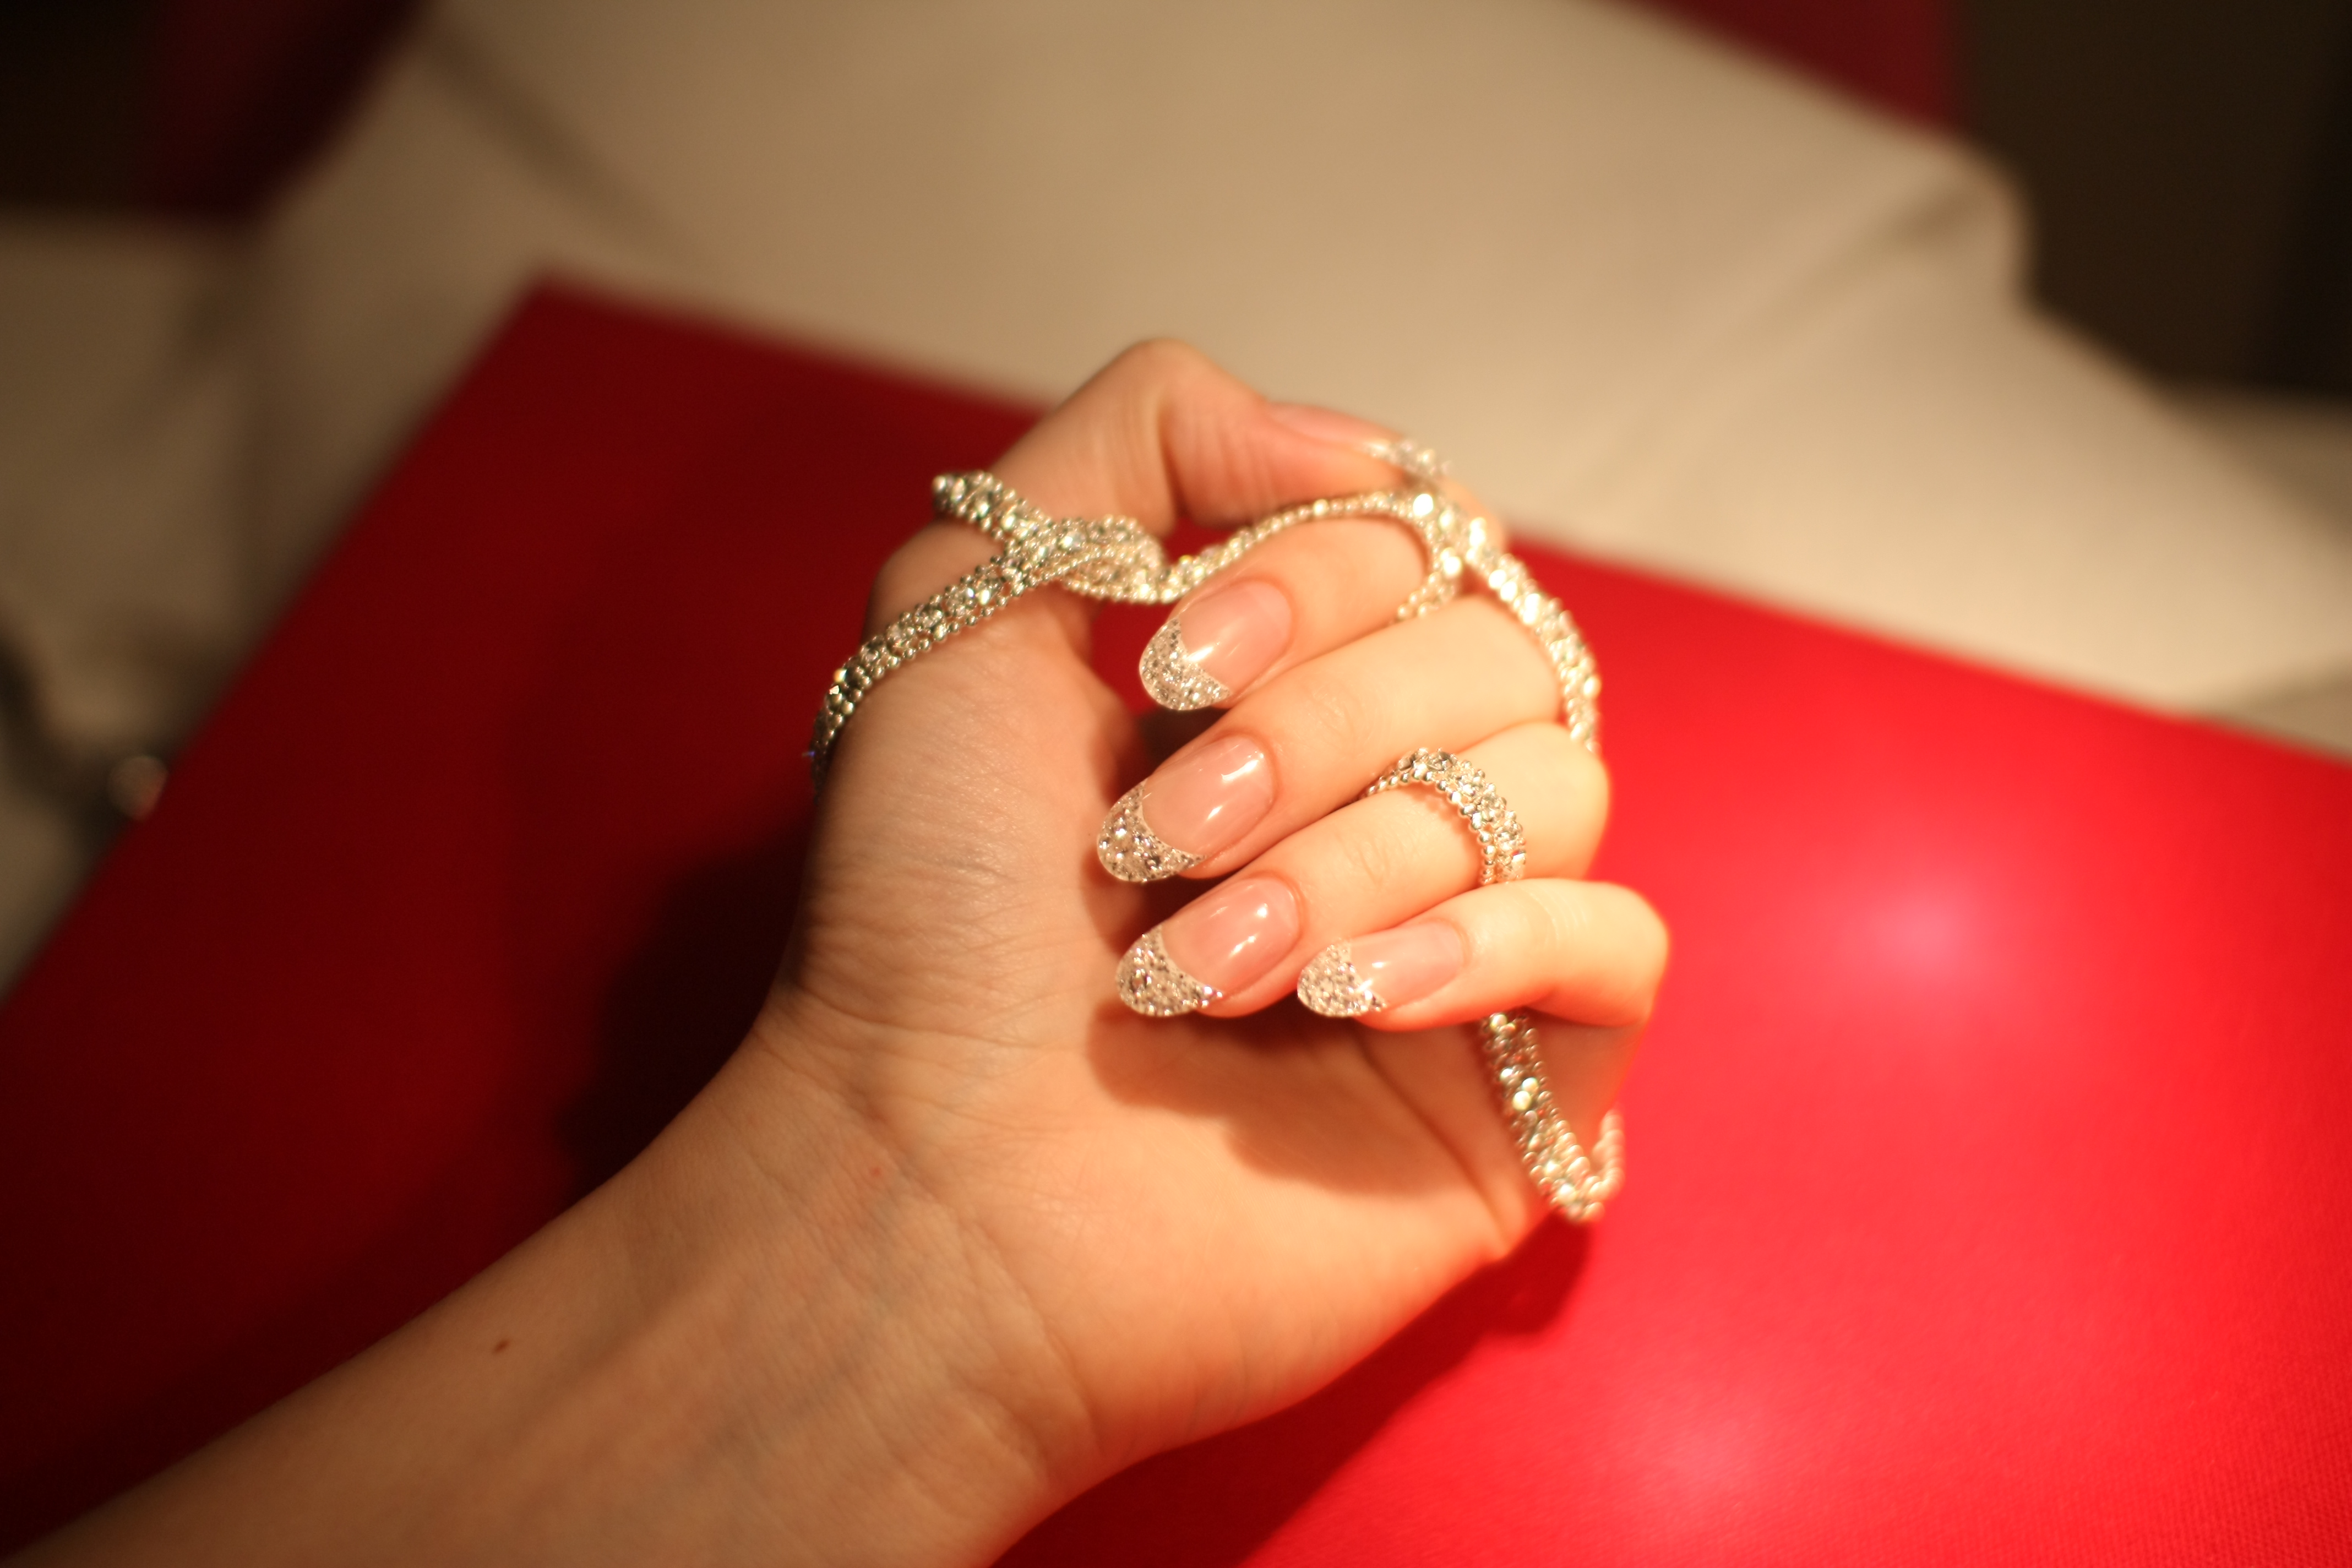 Most Expensive Manicure from Cherish 1